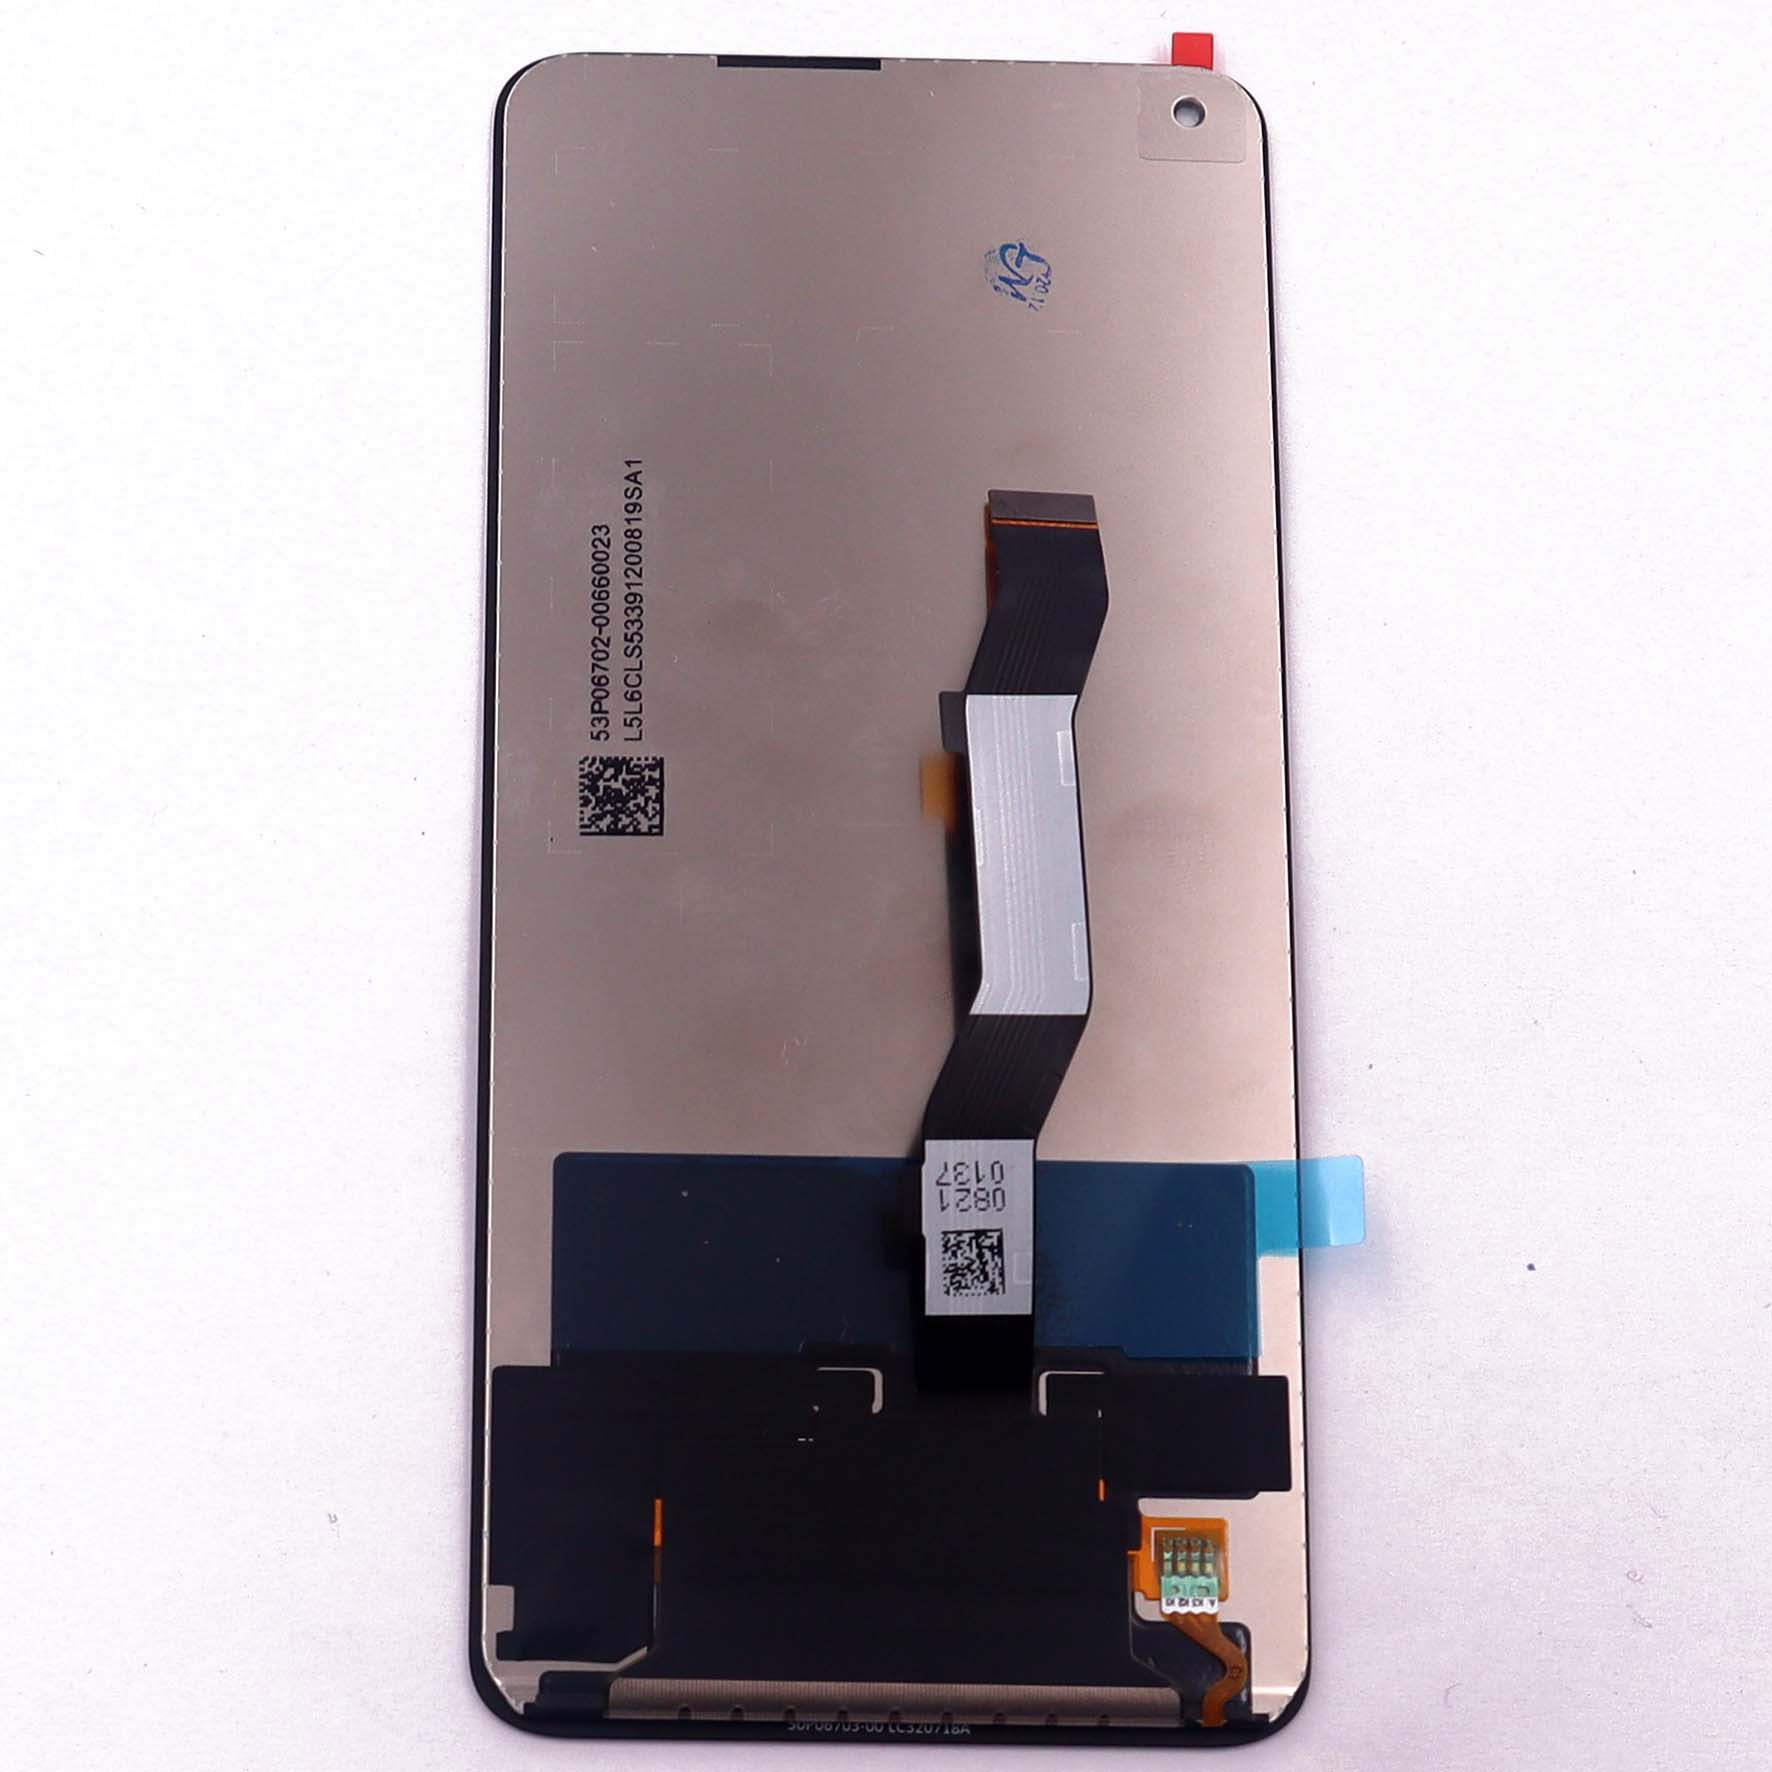 3G version LCD Power Switch Key Connection Board Flex Cable for iPad 2